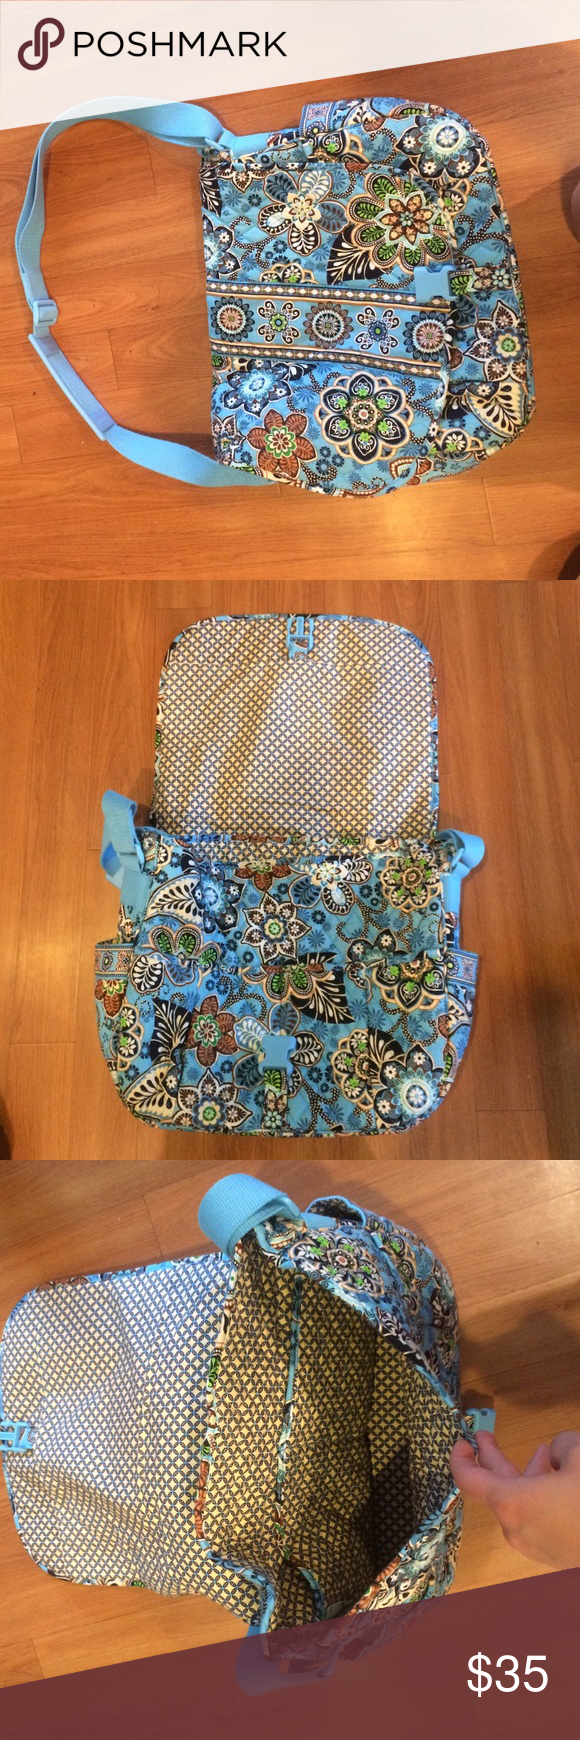 Vera Bradley On the Go bag Perfect size for carrying computers or textbooks-6 open pockets and one large zipper pocket in the back Vera Bradley Bags Laptop Bags